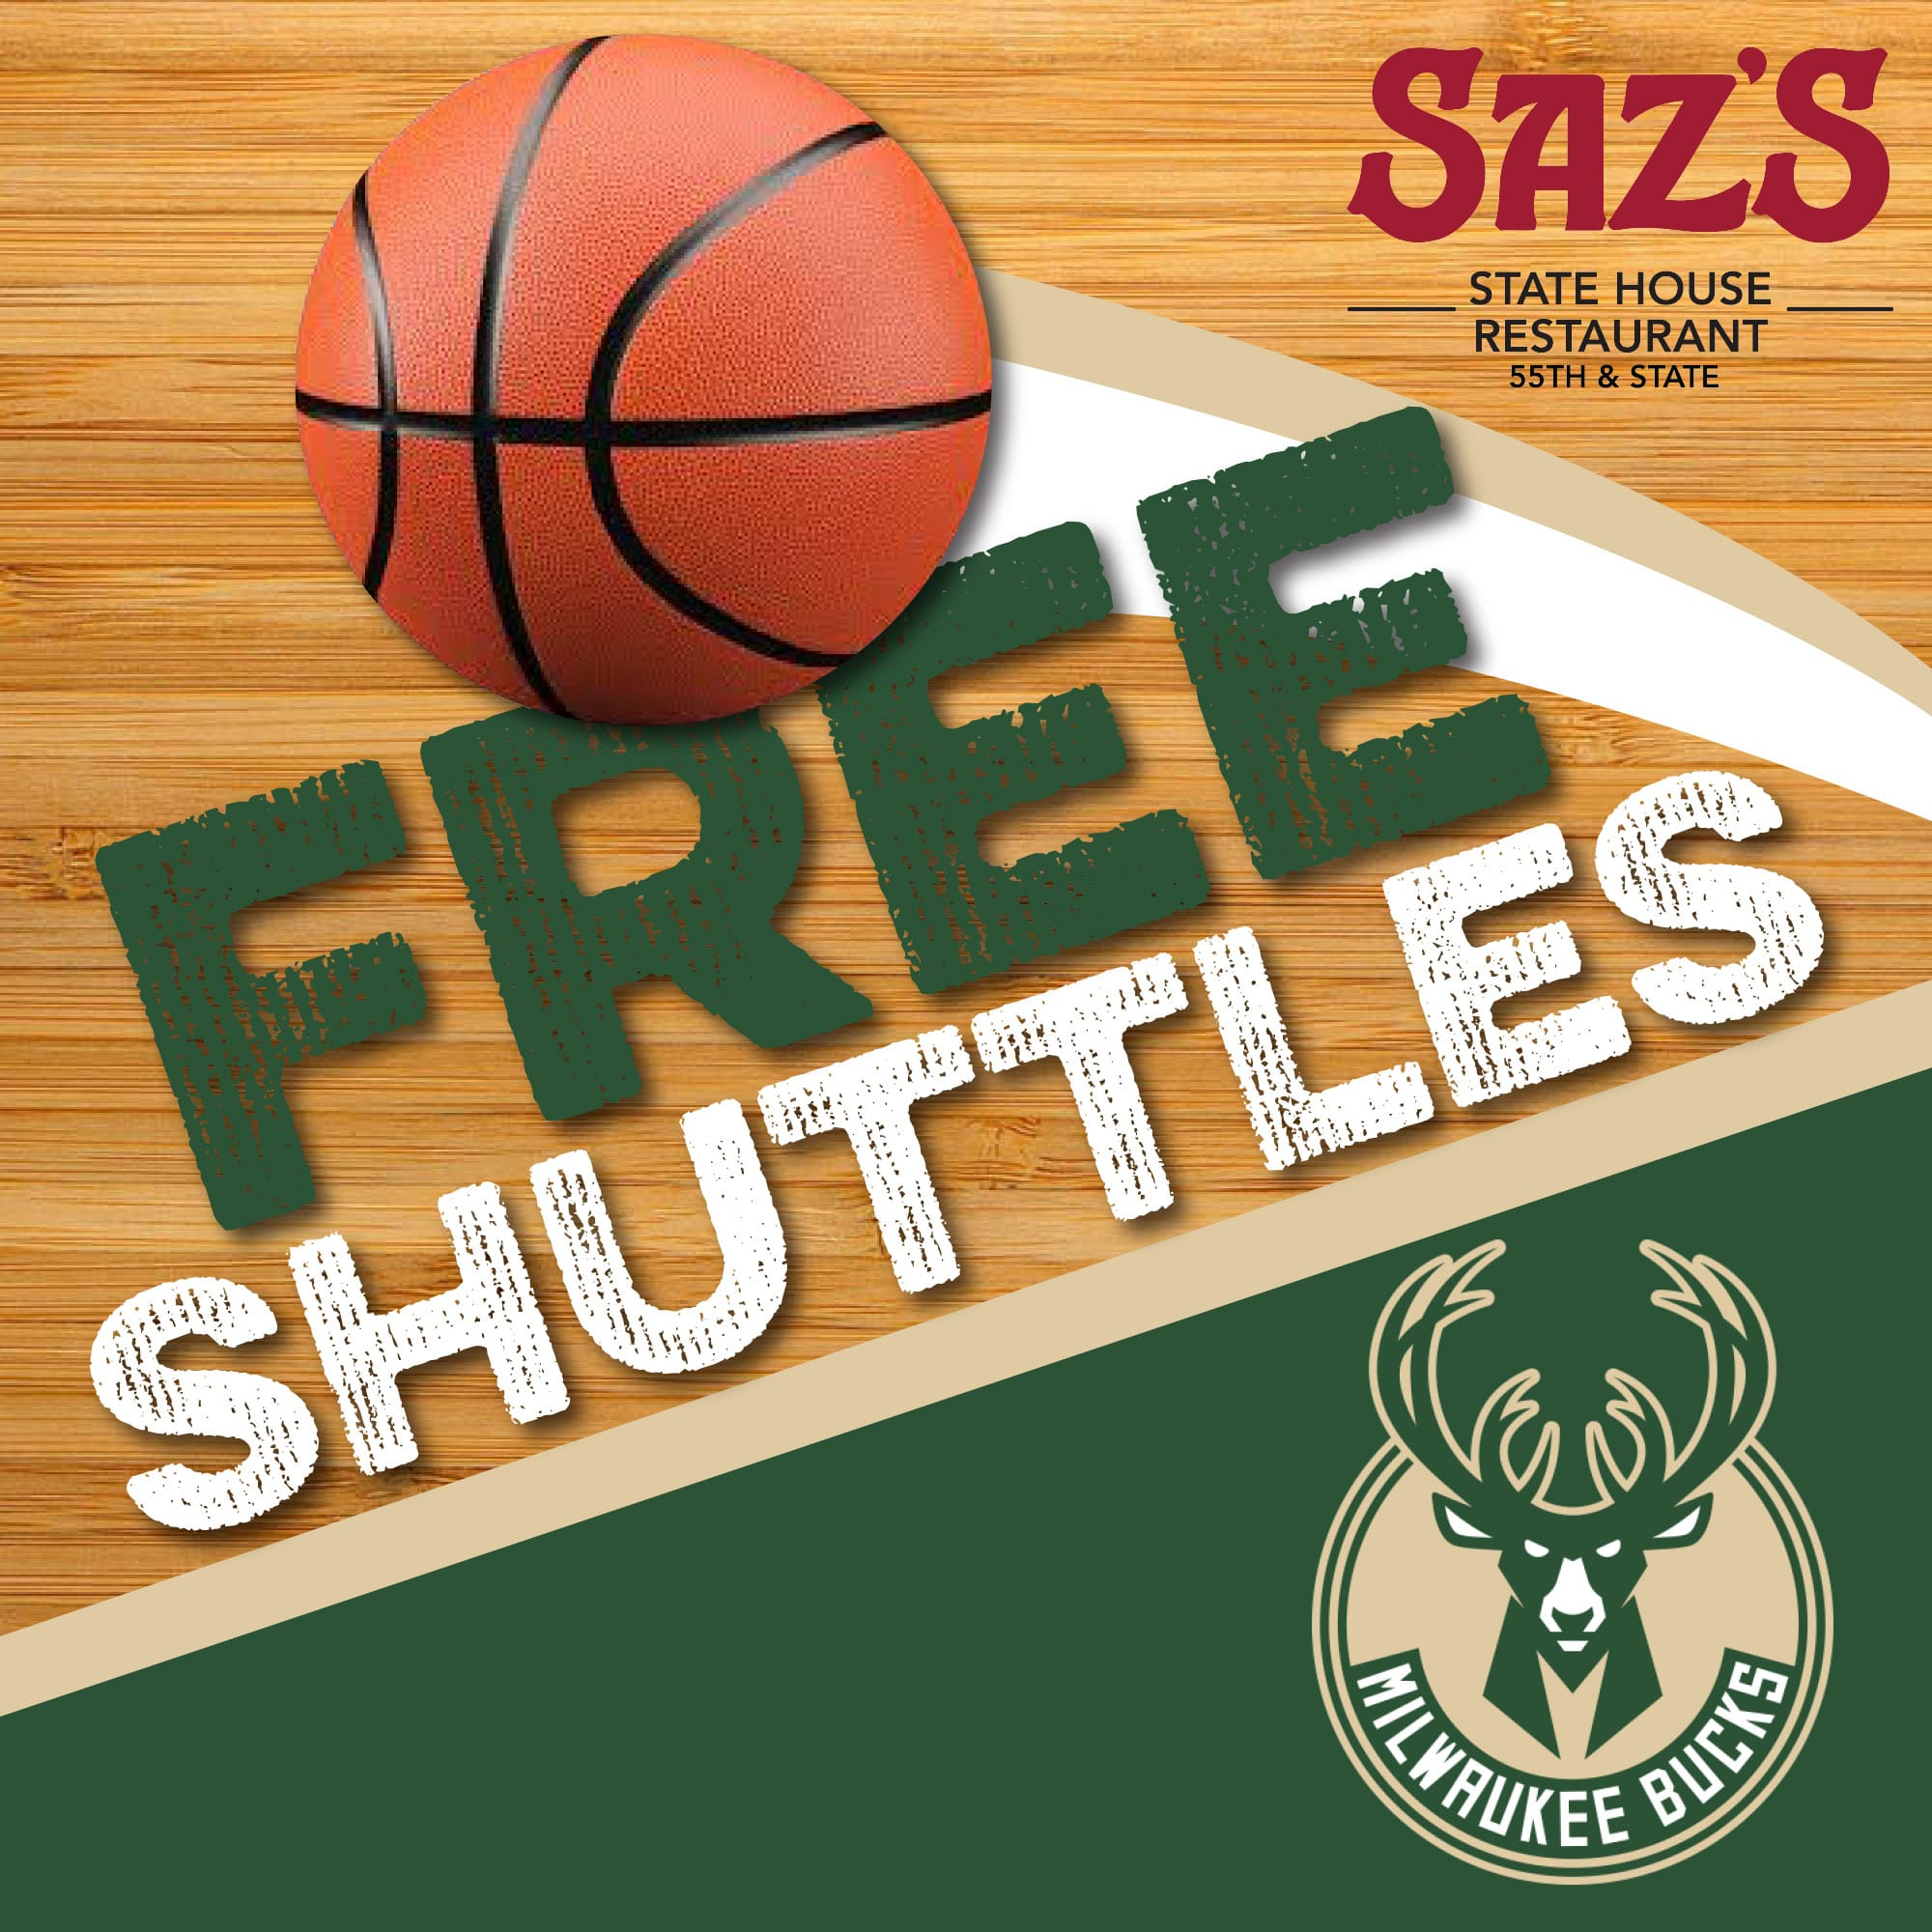 RIde Saz's Shuttle To The Bucks Game